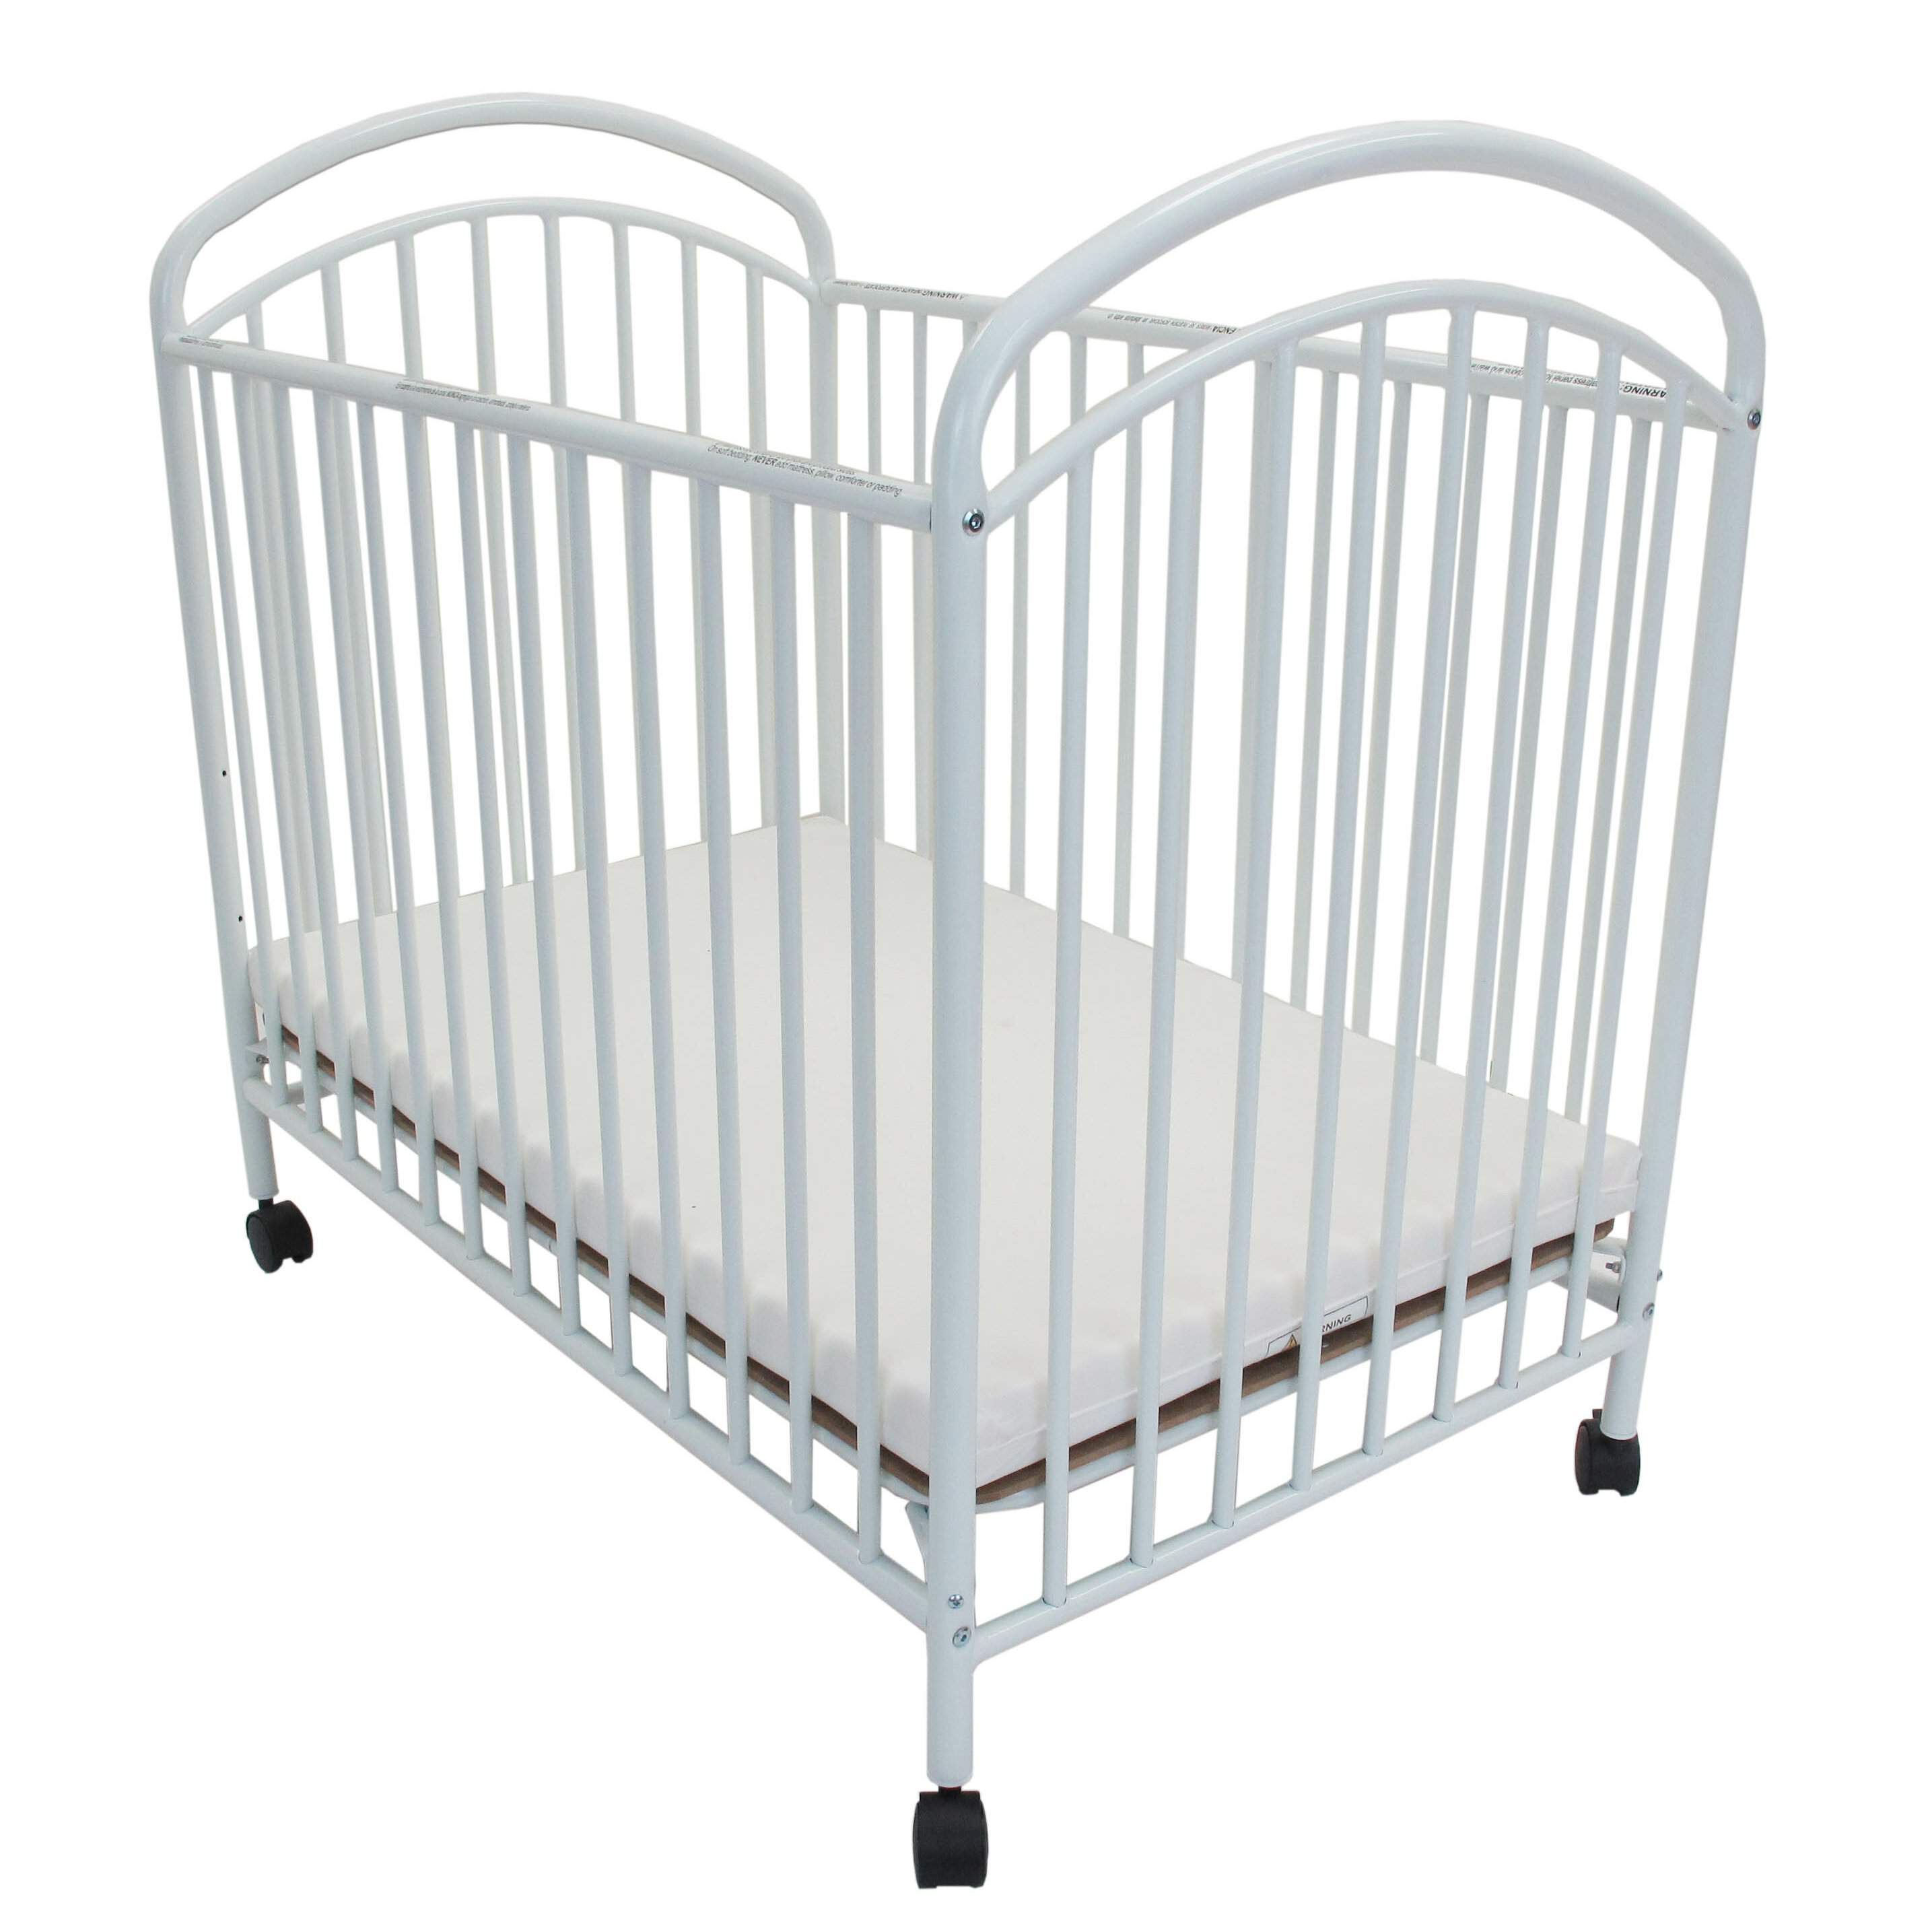 L.A. Baby Classic Arched Compact Metal Portable Crib with Mattress ...